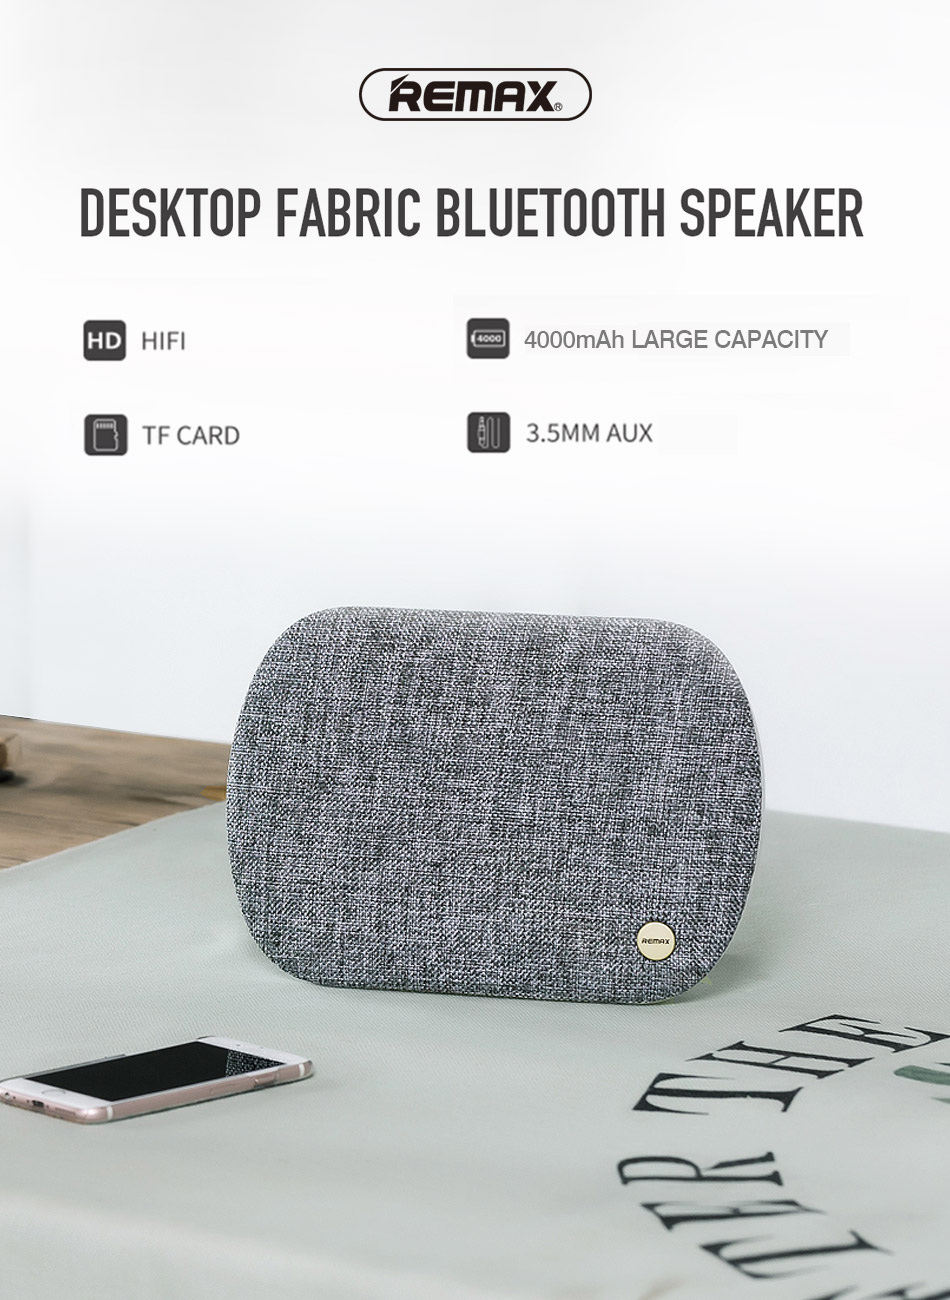 Remax Bluetooth 42 Speaker Portable Wireless Fabric Stereo Music Type Rb M23 Series Grey Bass Hd Sound System 6w2 With Tf Aux Usb